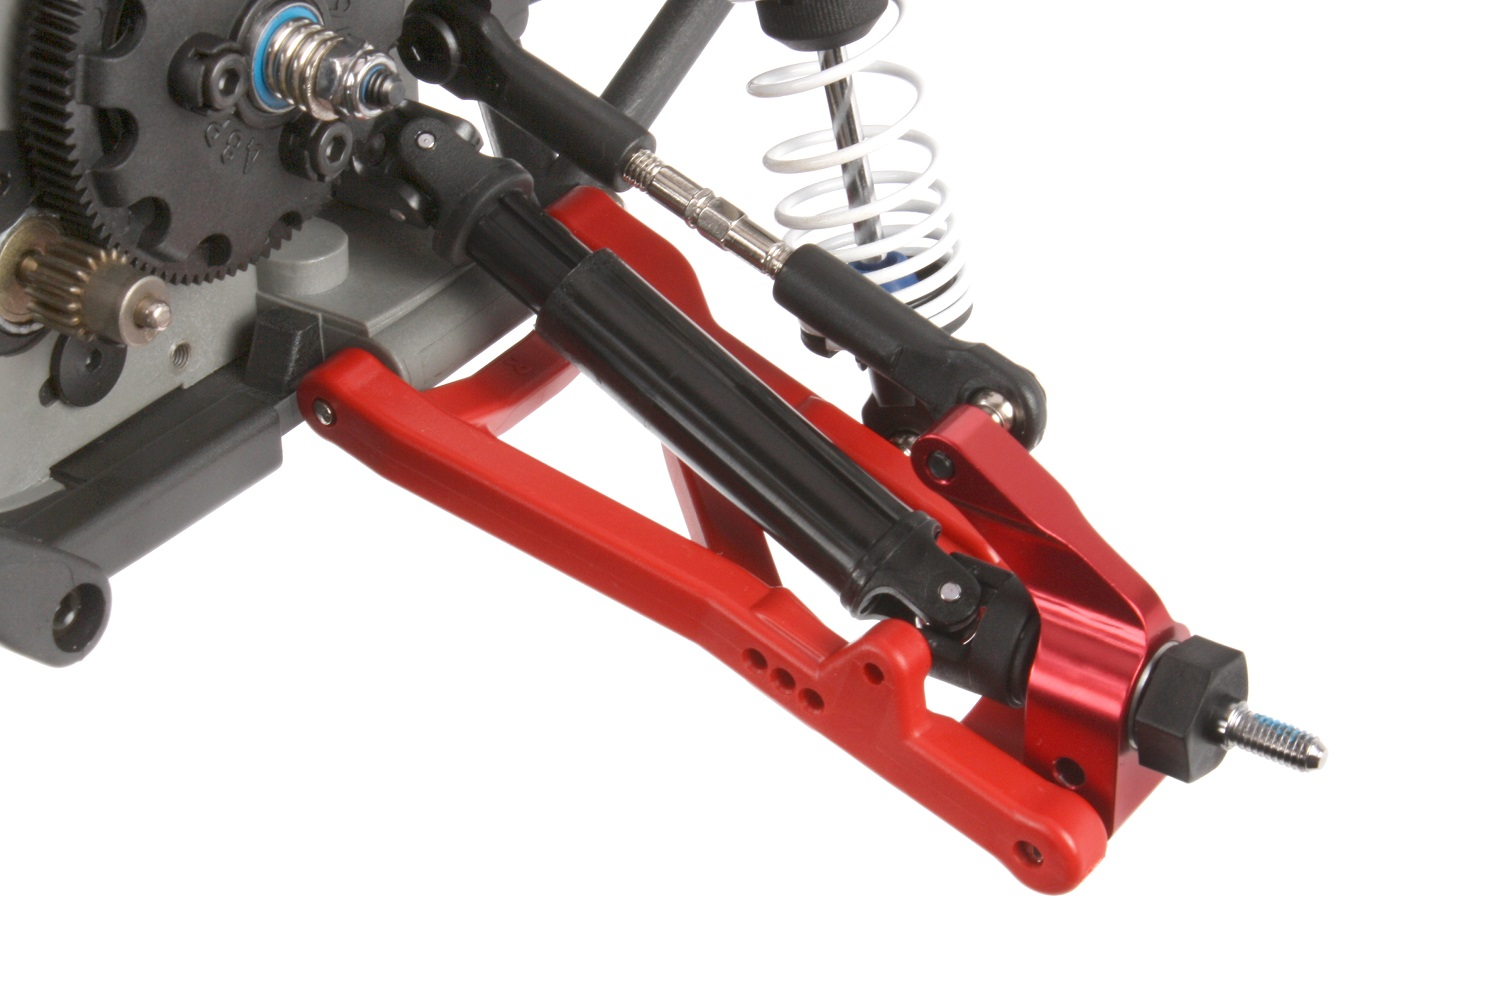 Red aluminum axle carriers